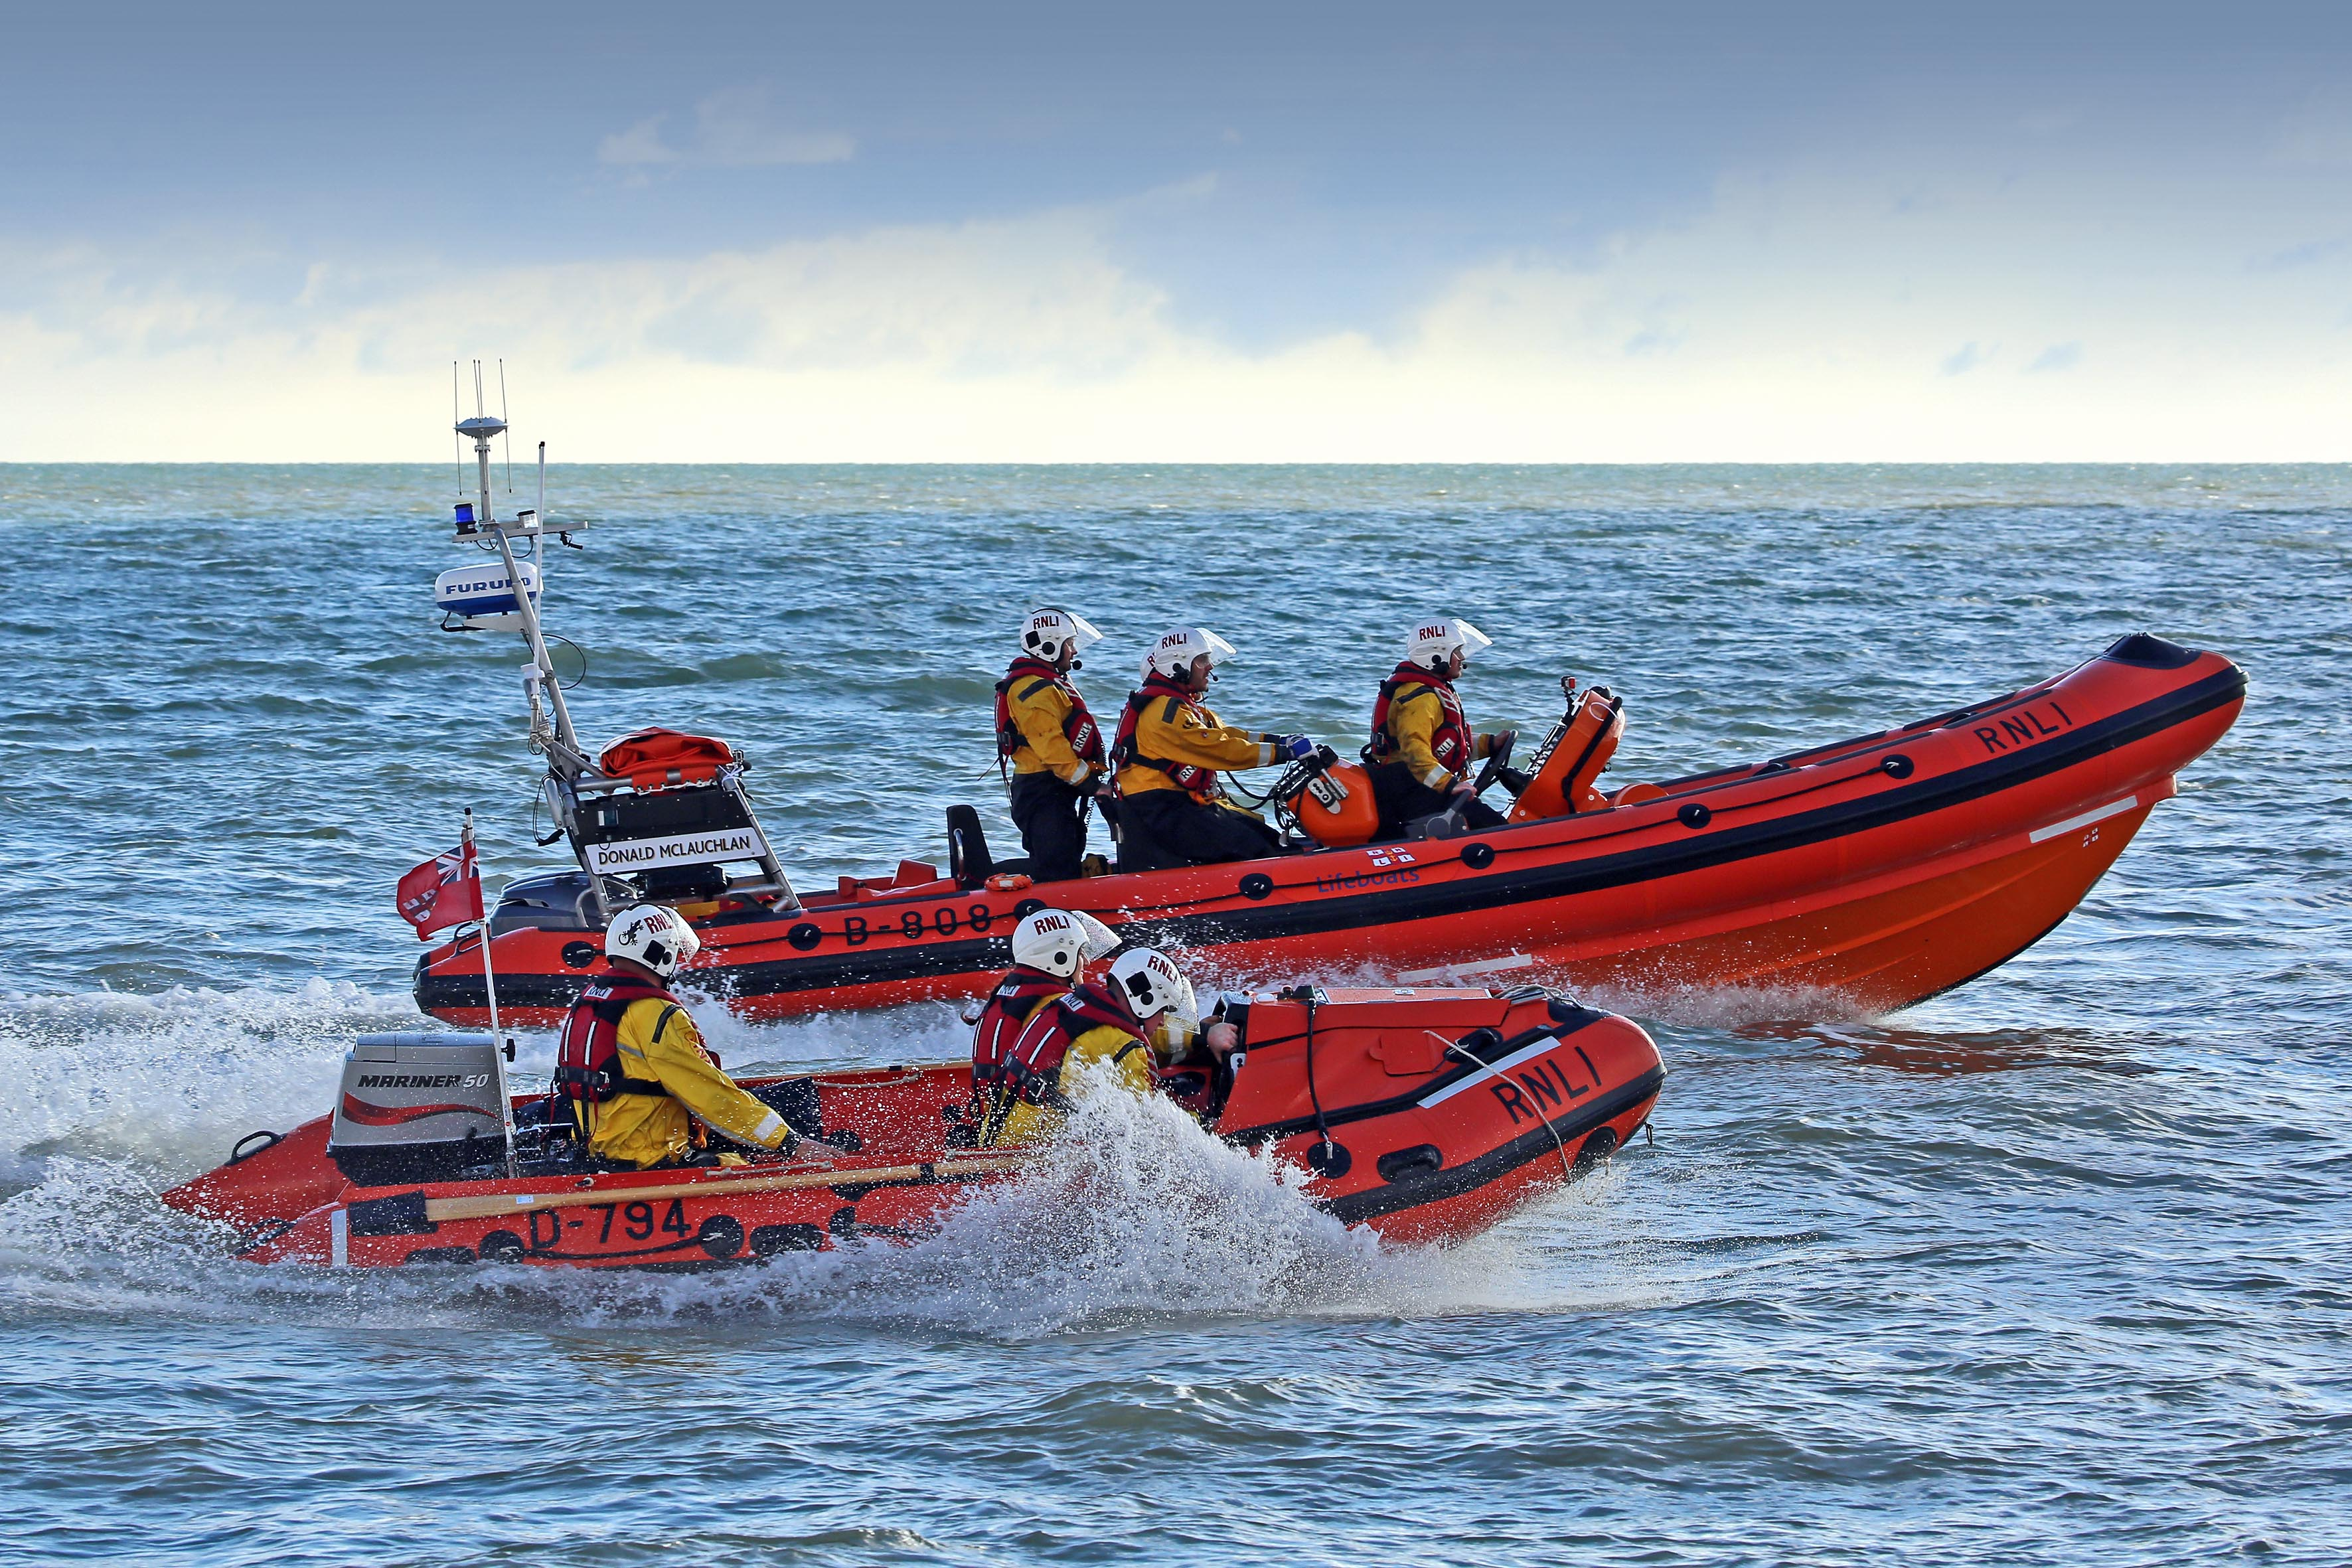 Walmer's Atlantic and D Class lifeboats